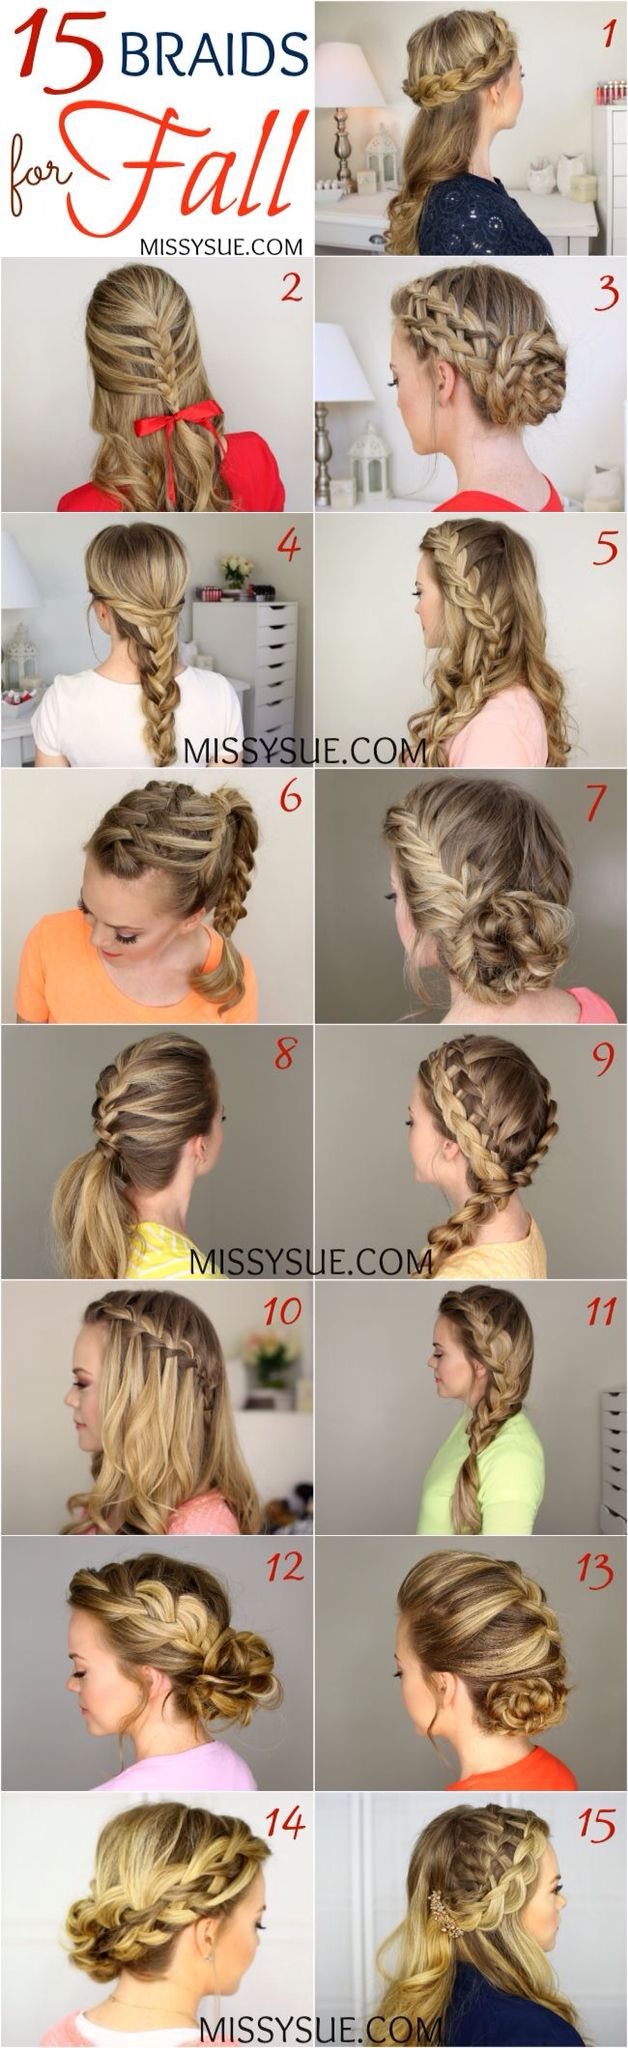 15 Awesome Braids for Fall!!!